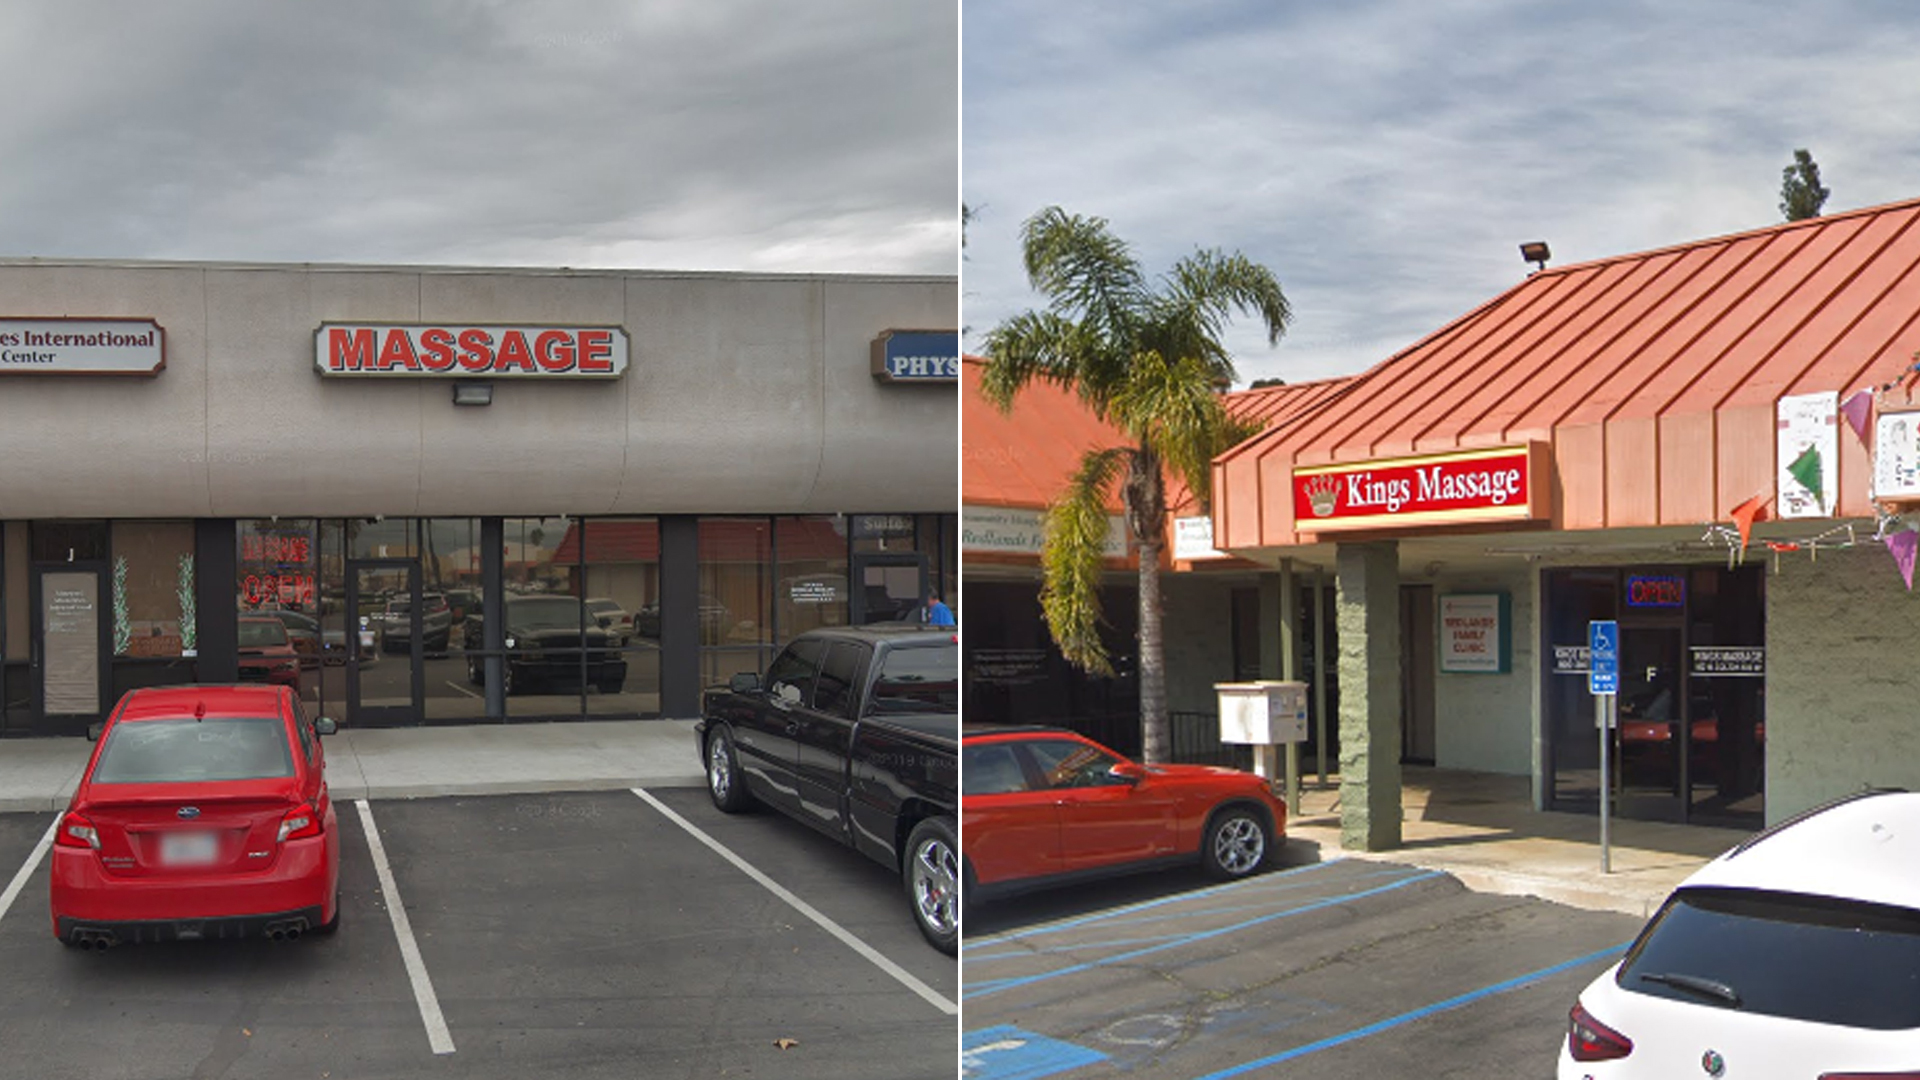 Two Redlands massage parlors shut down after a sheriff's investigation are seen in Google Maps Street View images.